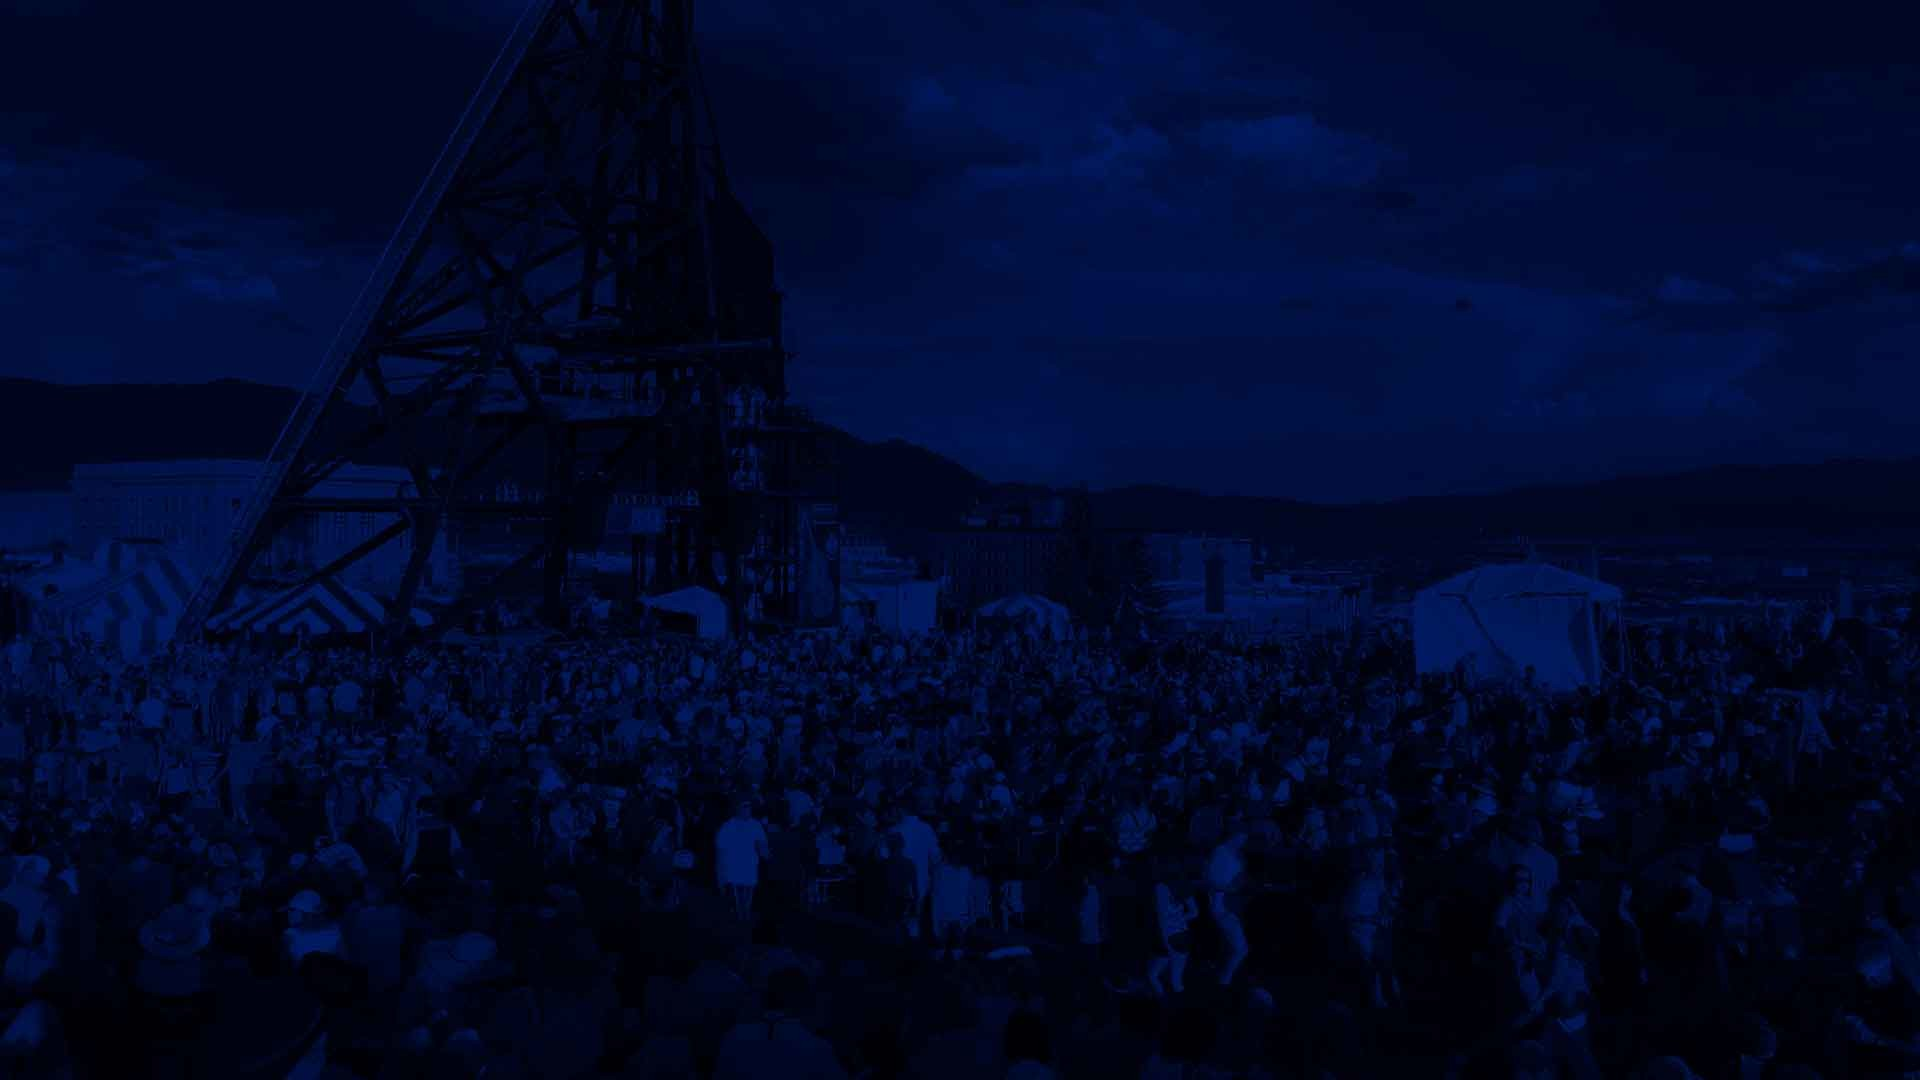 1920x1080 Image of Montana Folk Festival Midnight Blue Background